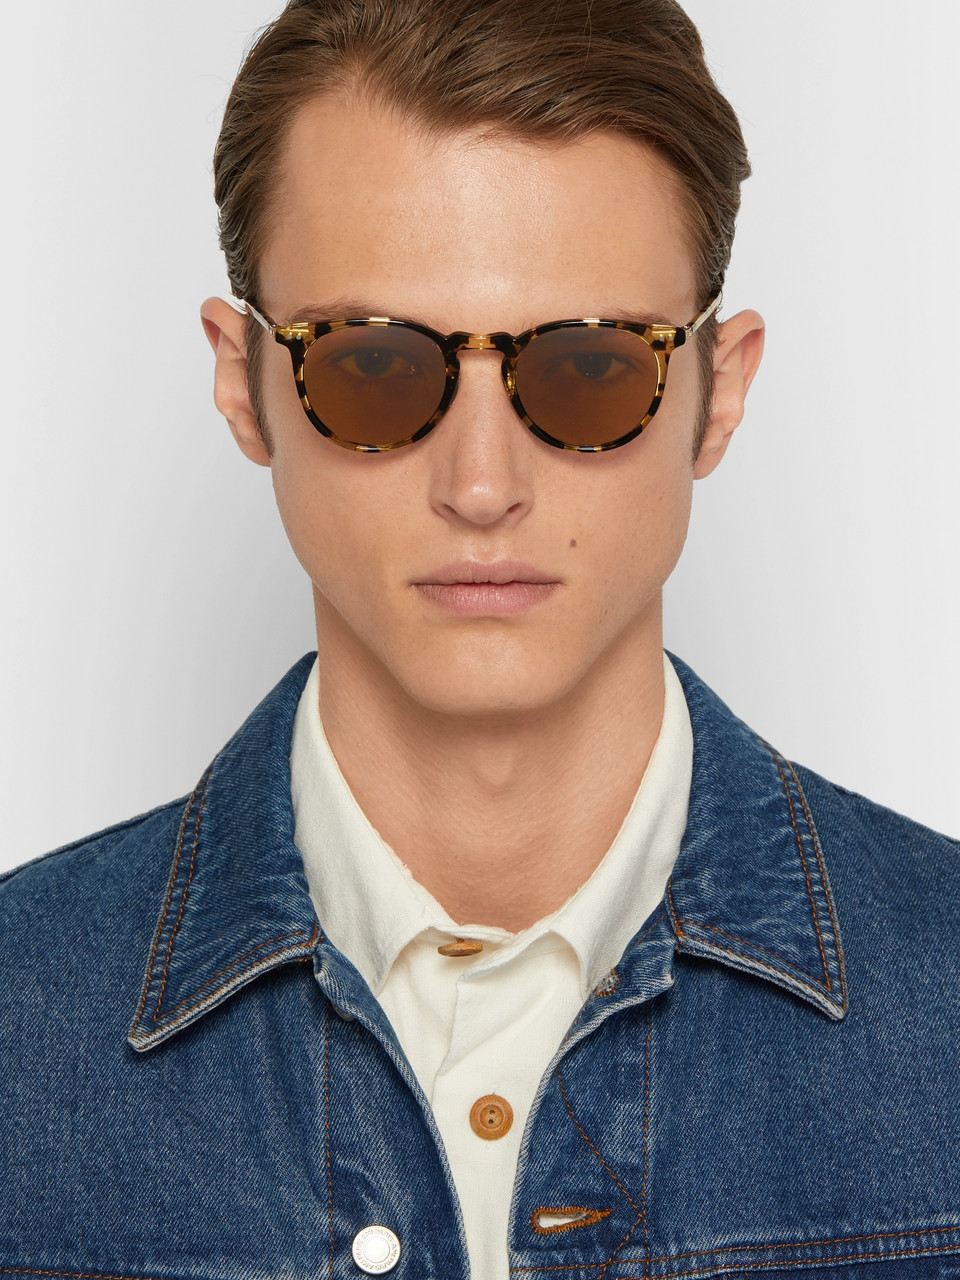 Garrett Leight California Optical Ocean 46 Round-Frame Tortoiseshell Acetate Sunglasses